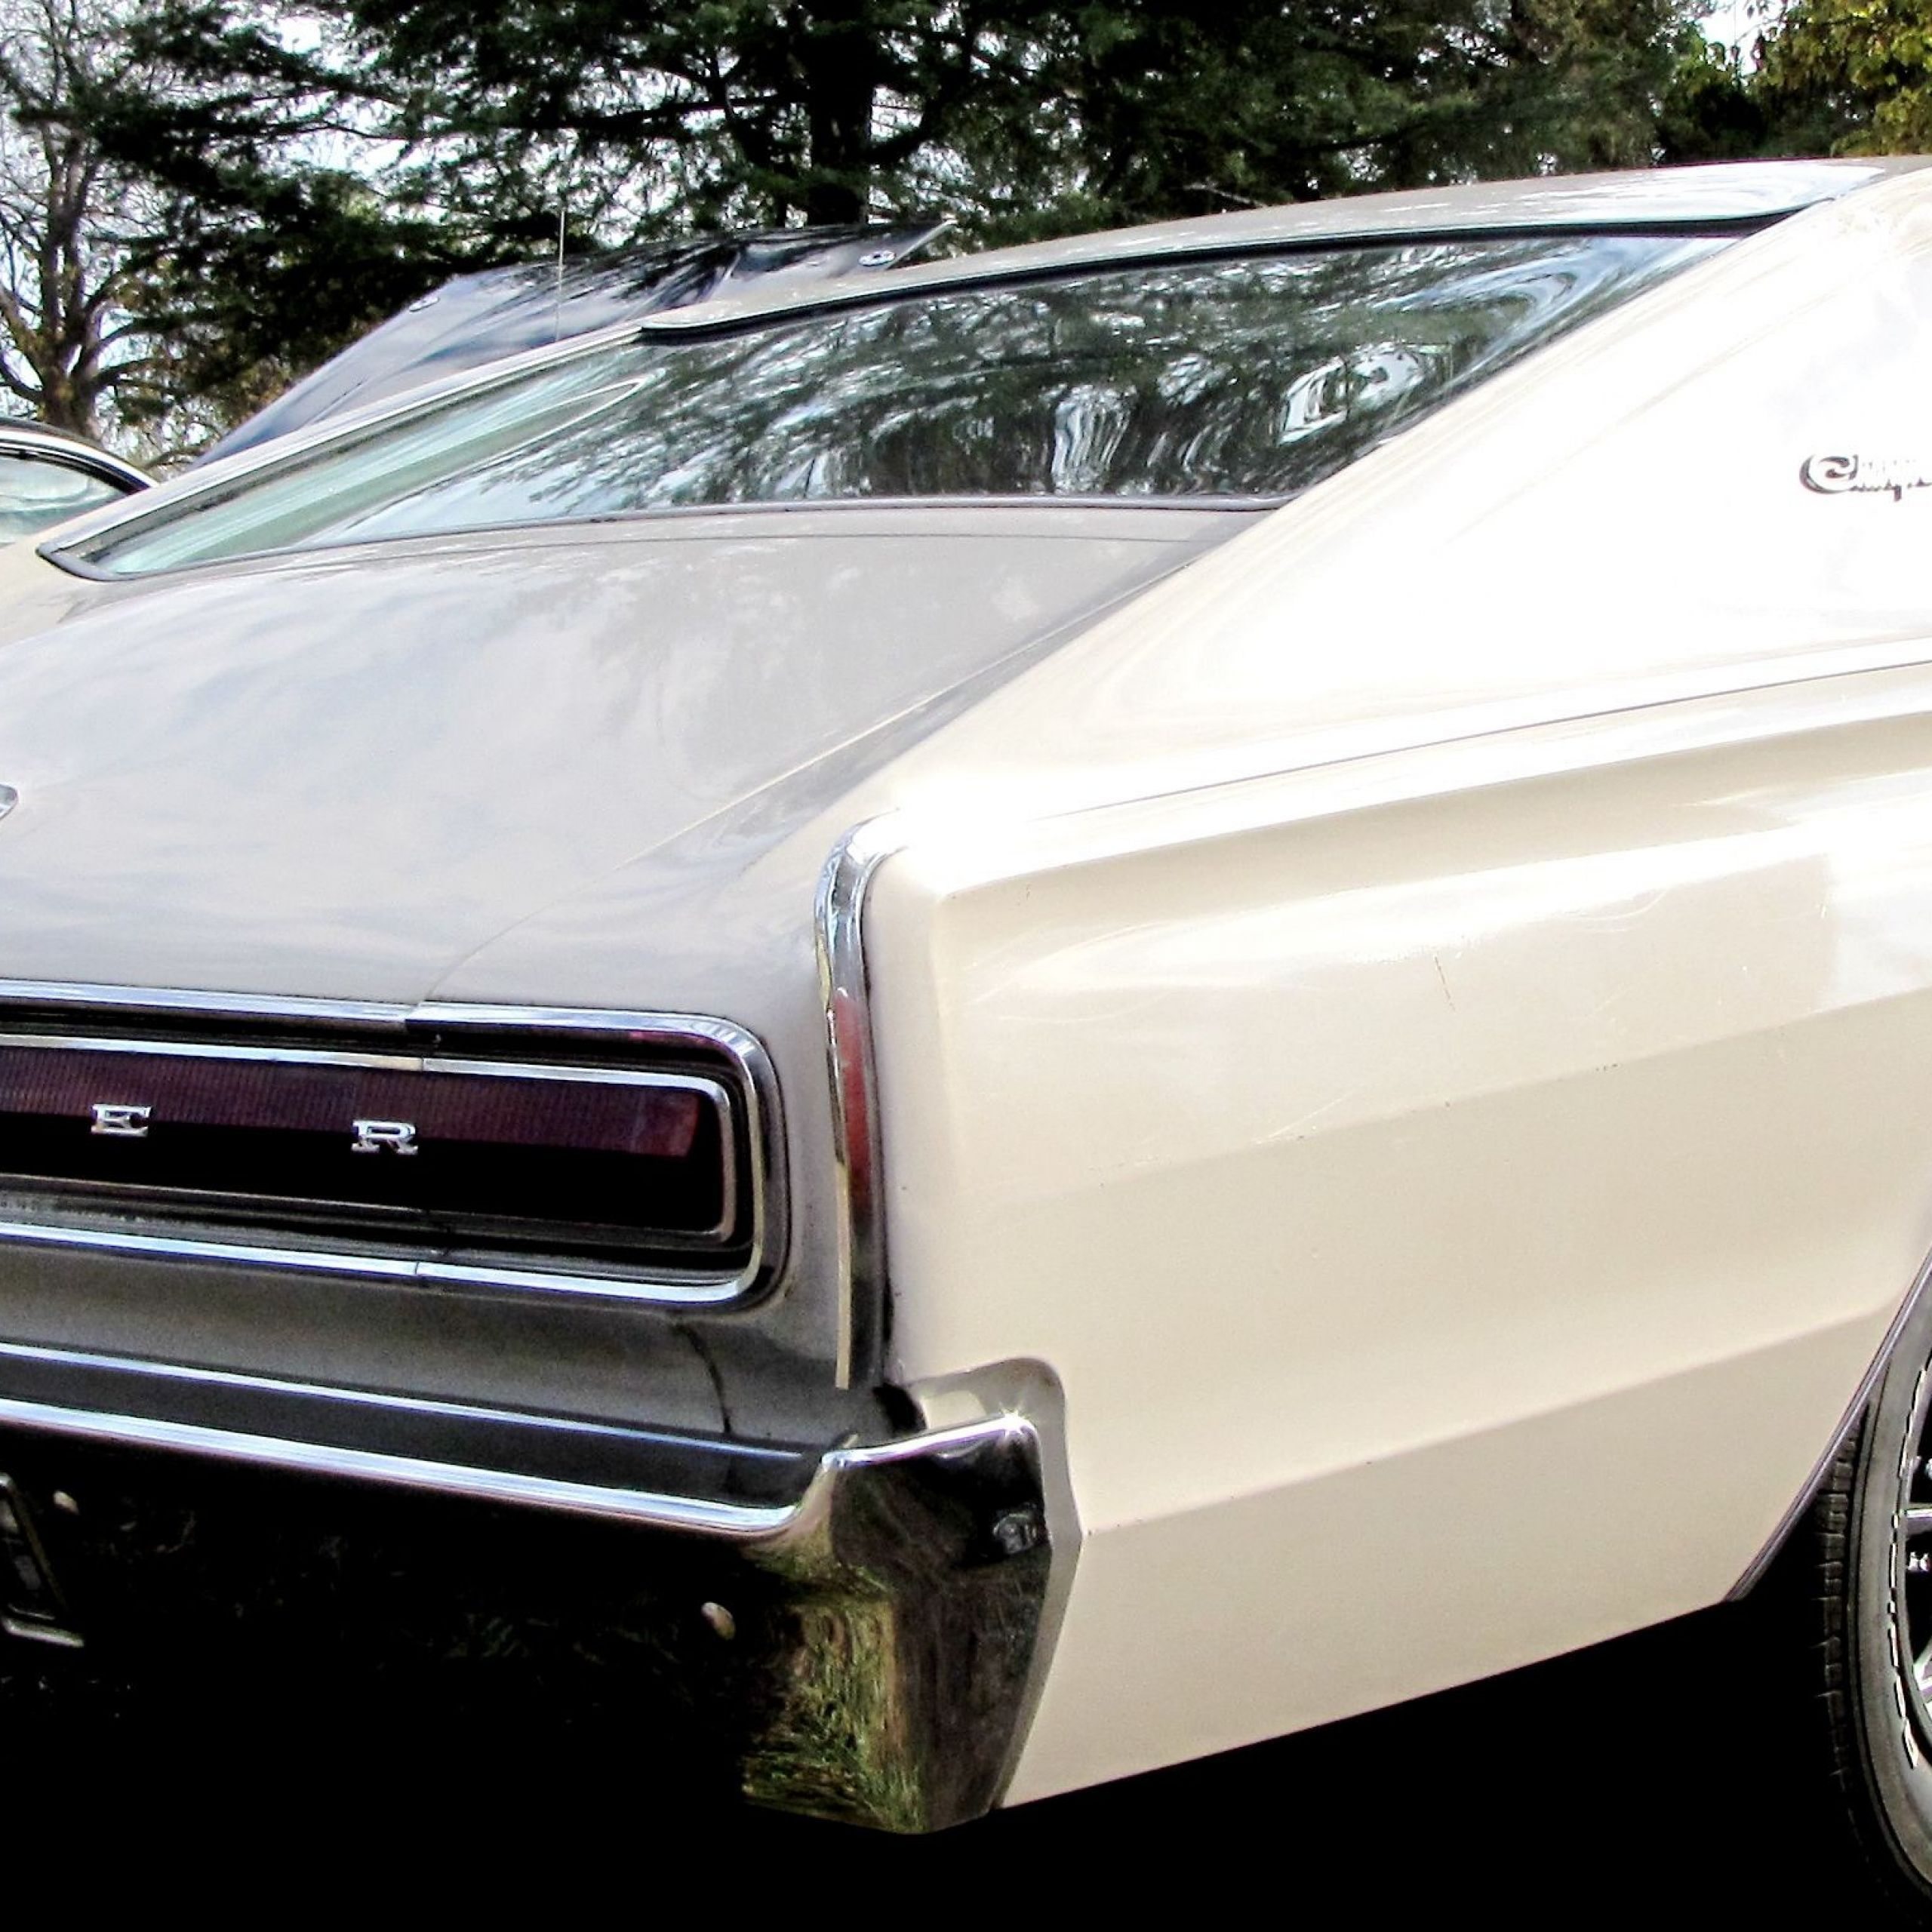 2010 Dodge Charger Inspirational 1966 Dodge Charger L My Photos